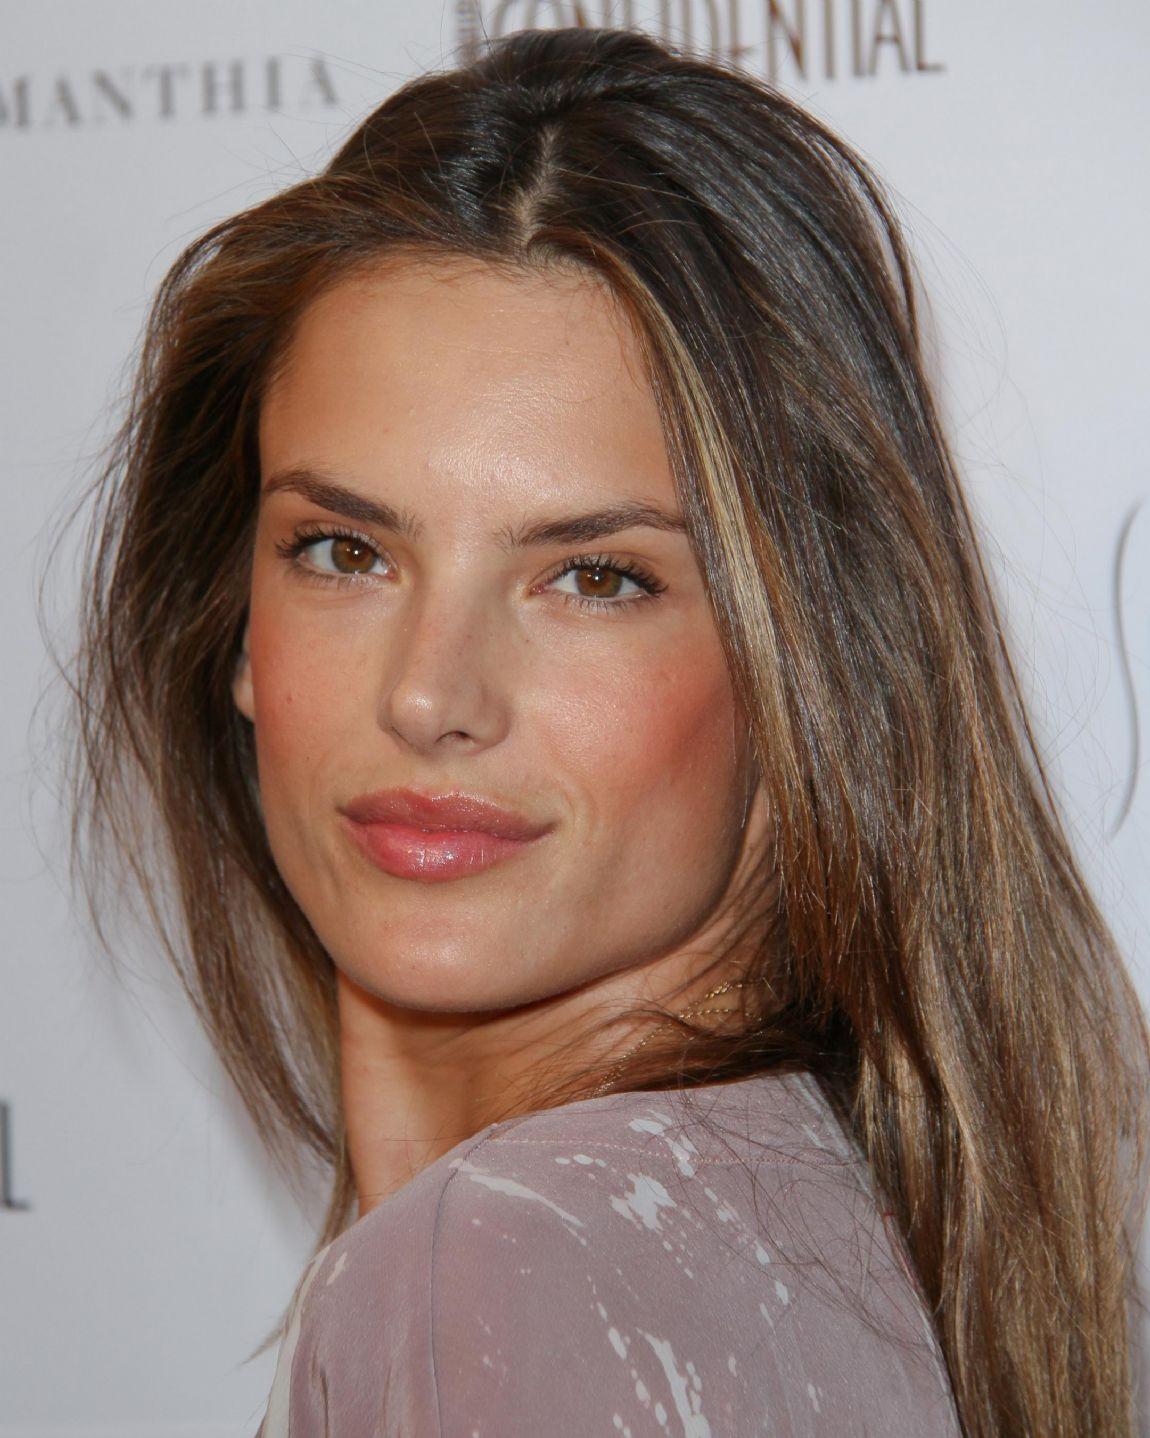 http://4.bp.blogspot.com/-pP7Z1RqDYok/TeZ0niaSNdI/AAAAAAAAKdQ/arlfzUPKm54/s1600/alessandra-ambrosio-party-on-to-put-the-spotlight-on-sierra-leone+%25283%2529.jpg